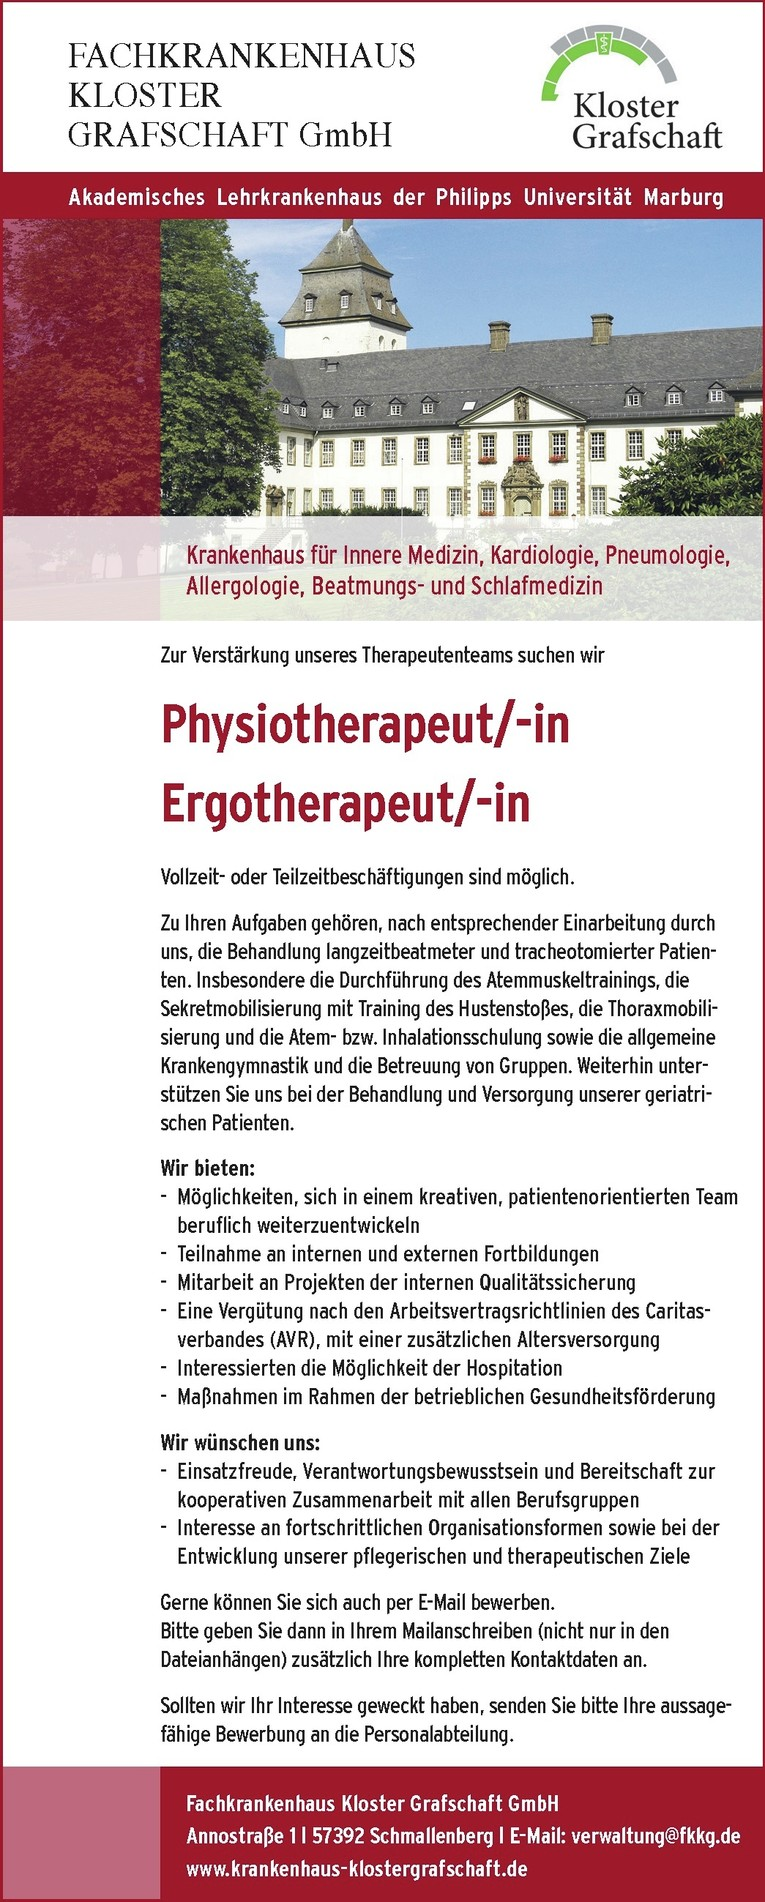 Physiotherapeut/-in und Ergotherapeut/-in